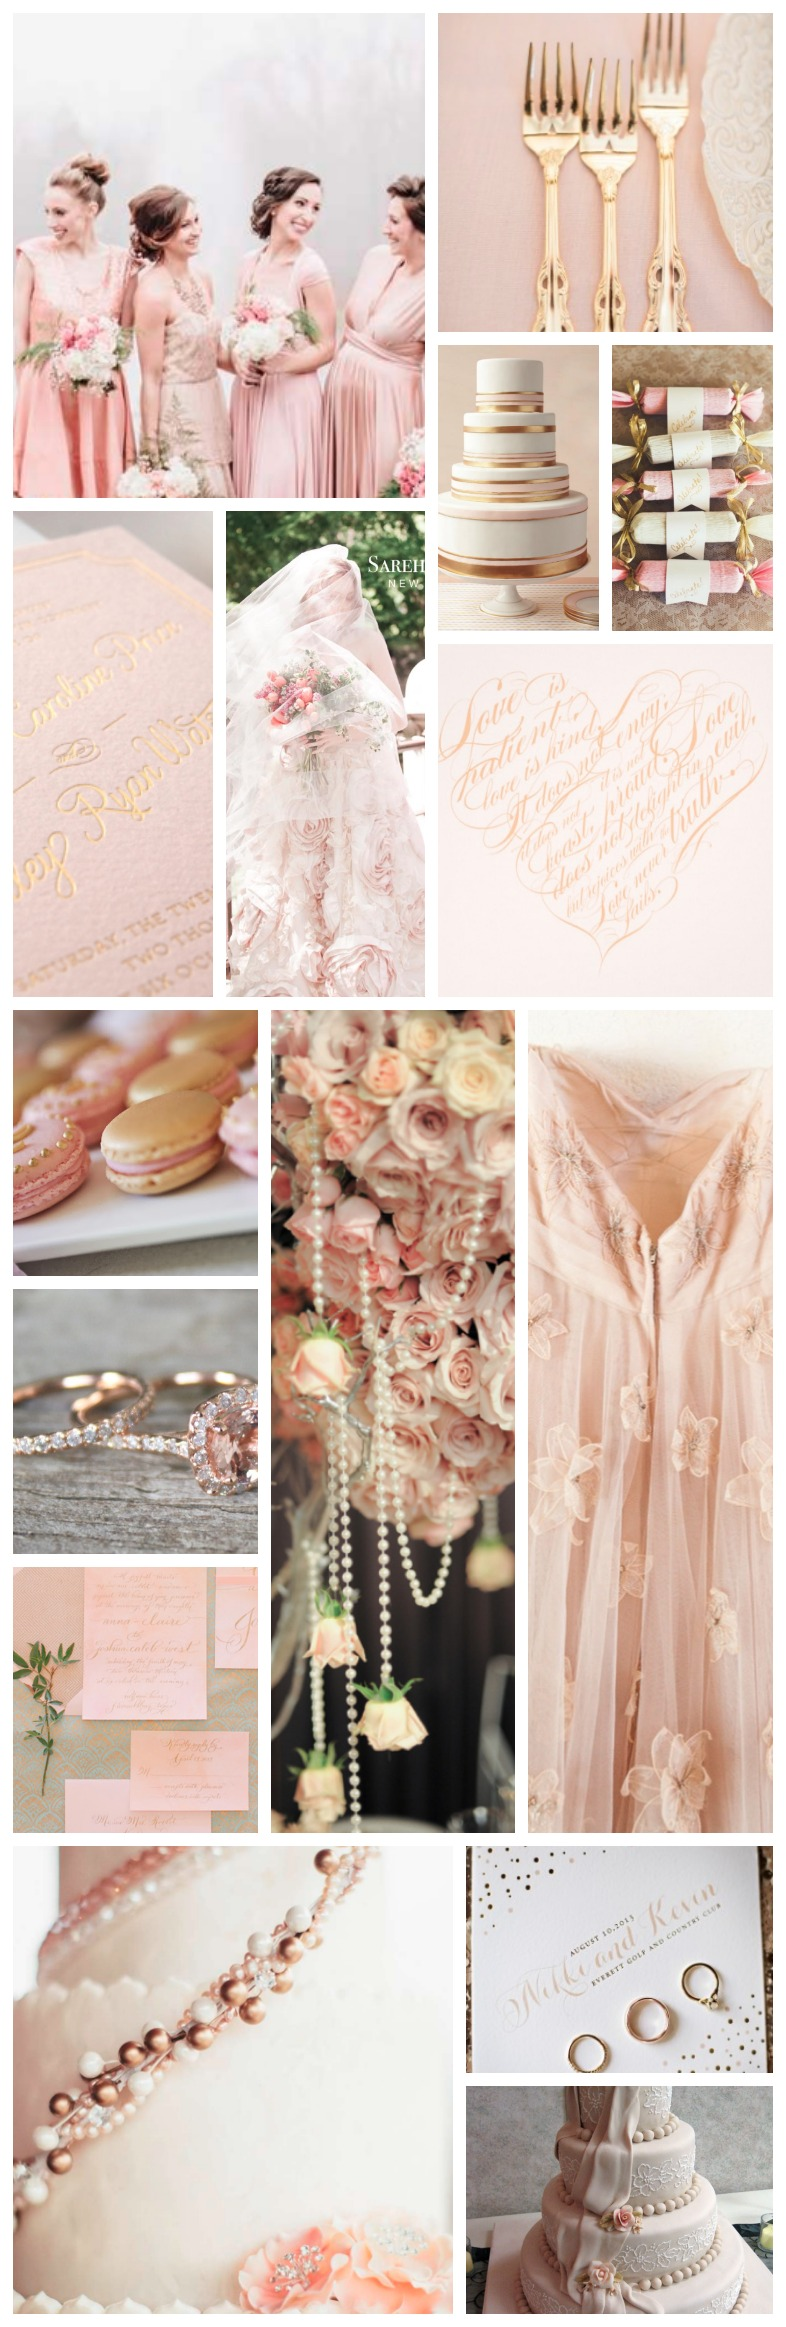 rose, blush and gold wedding palette inspiration board